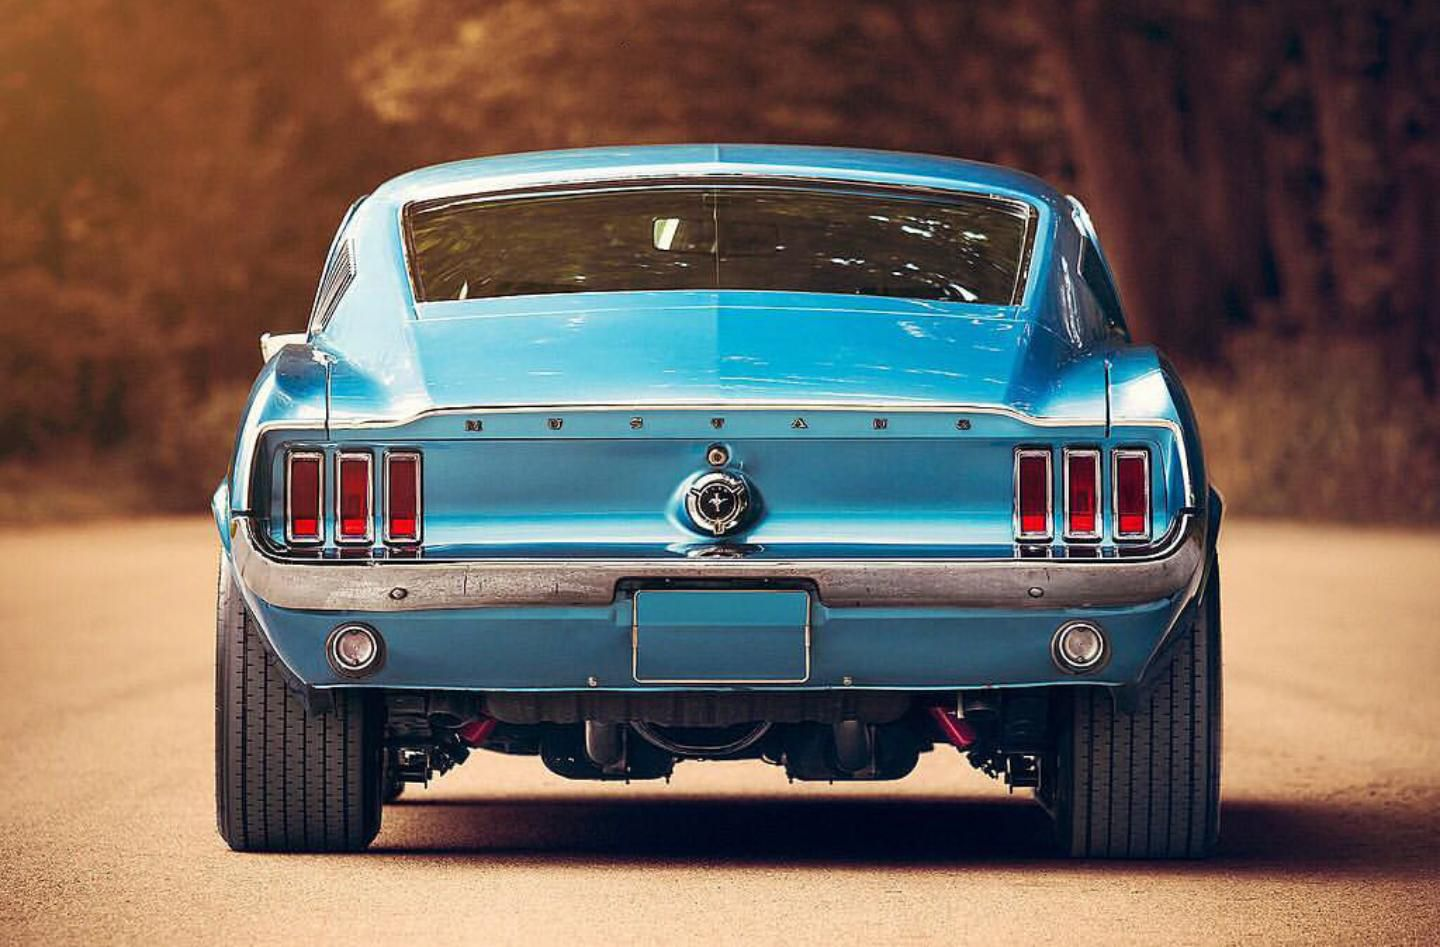 1967 Ford Mustang Fastback Carrito Autos Mustang Autos